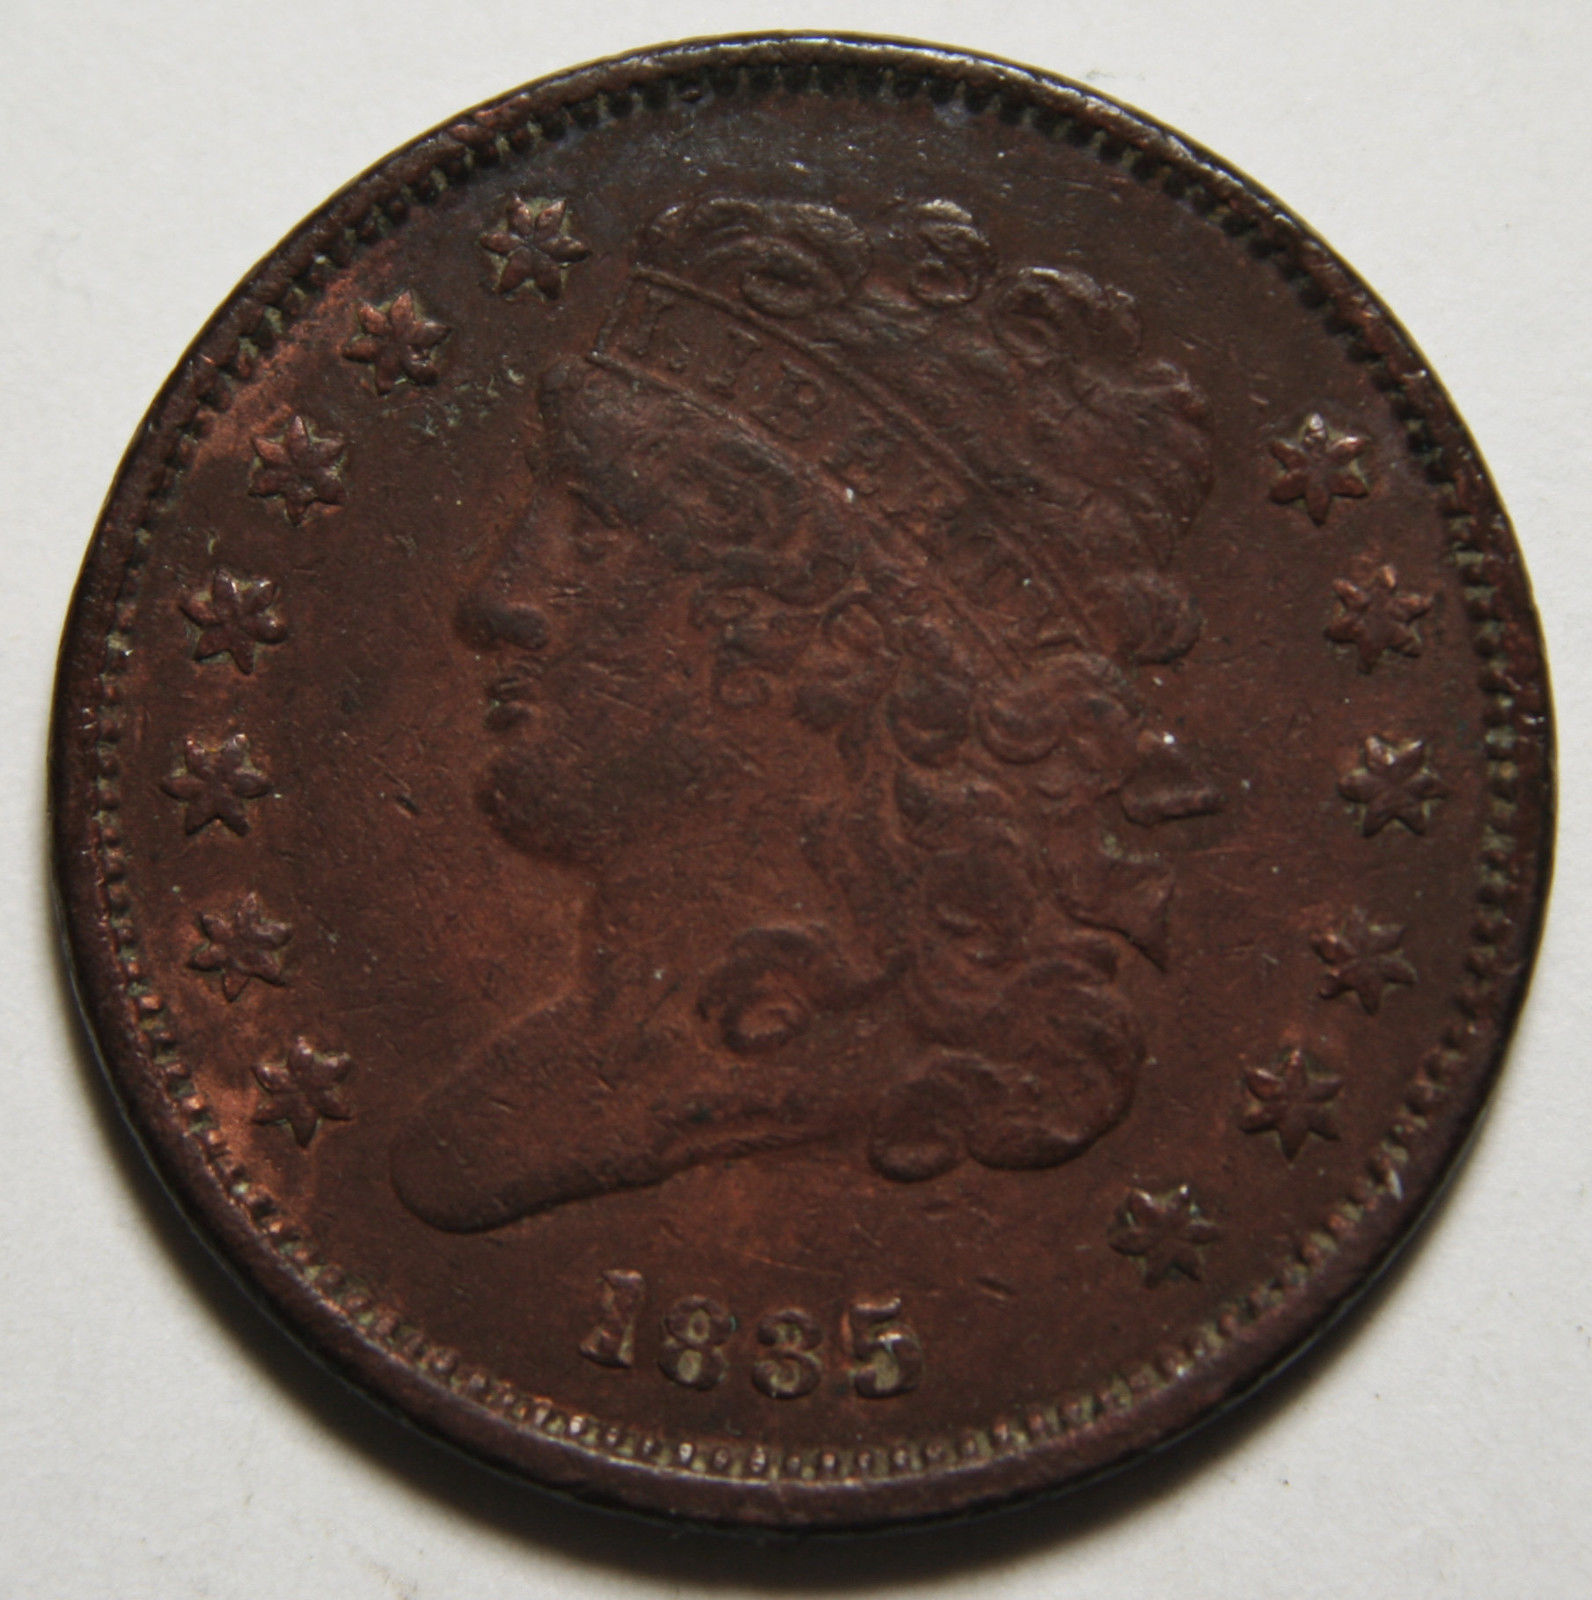 1835 Classic Bust Half Cent 1/2 Coin Lot # MZ 3457